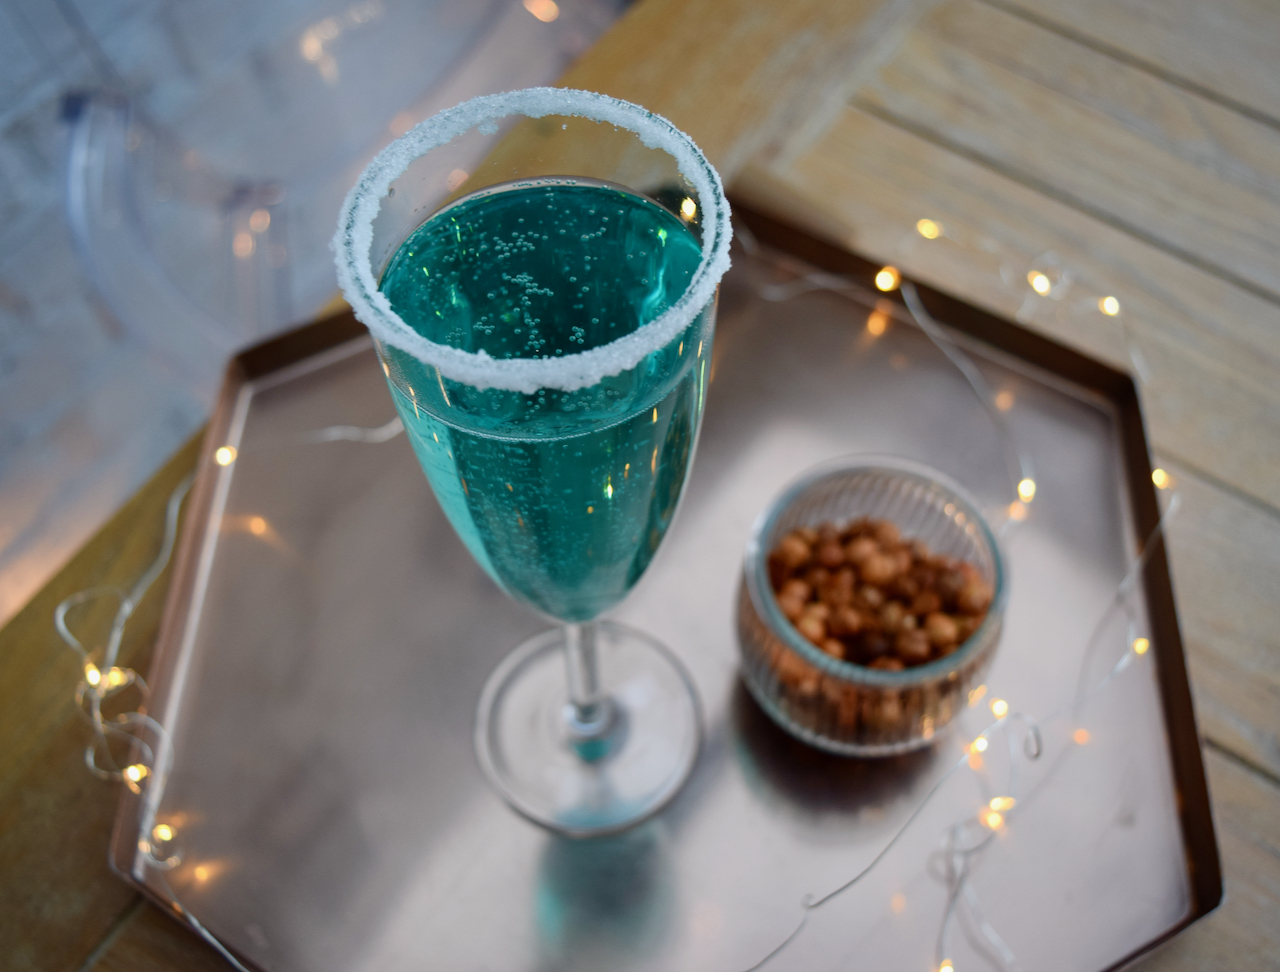 Jack Frost Bellini cocktail from Lucy Loves Food Blog